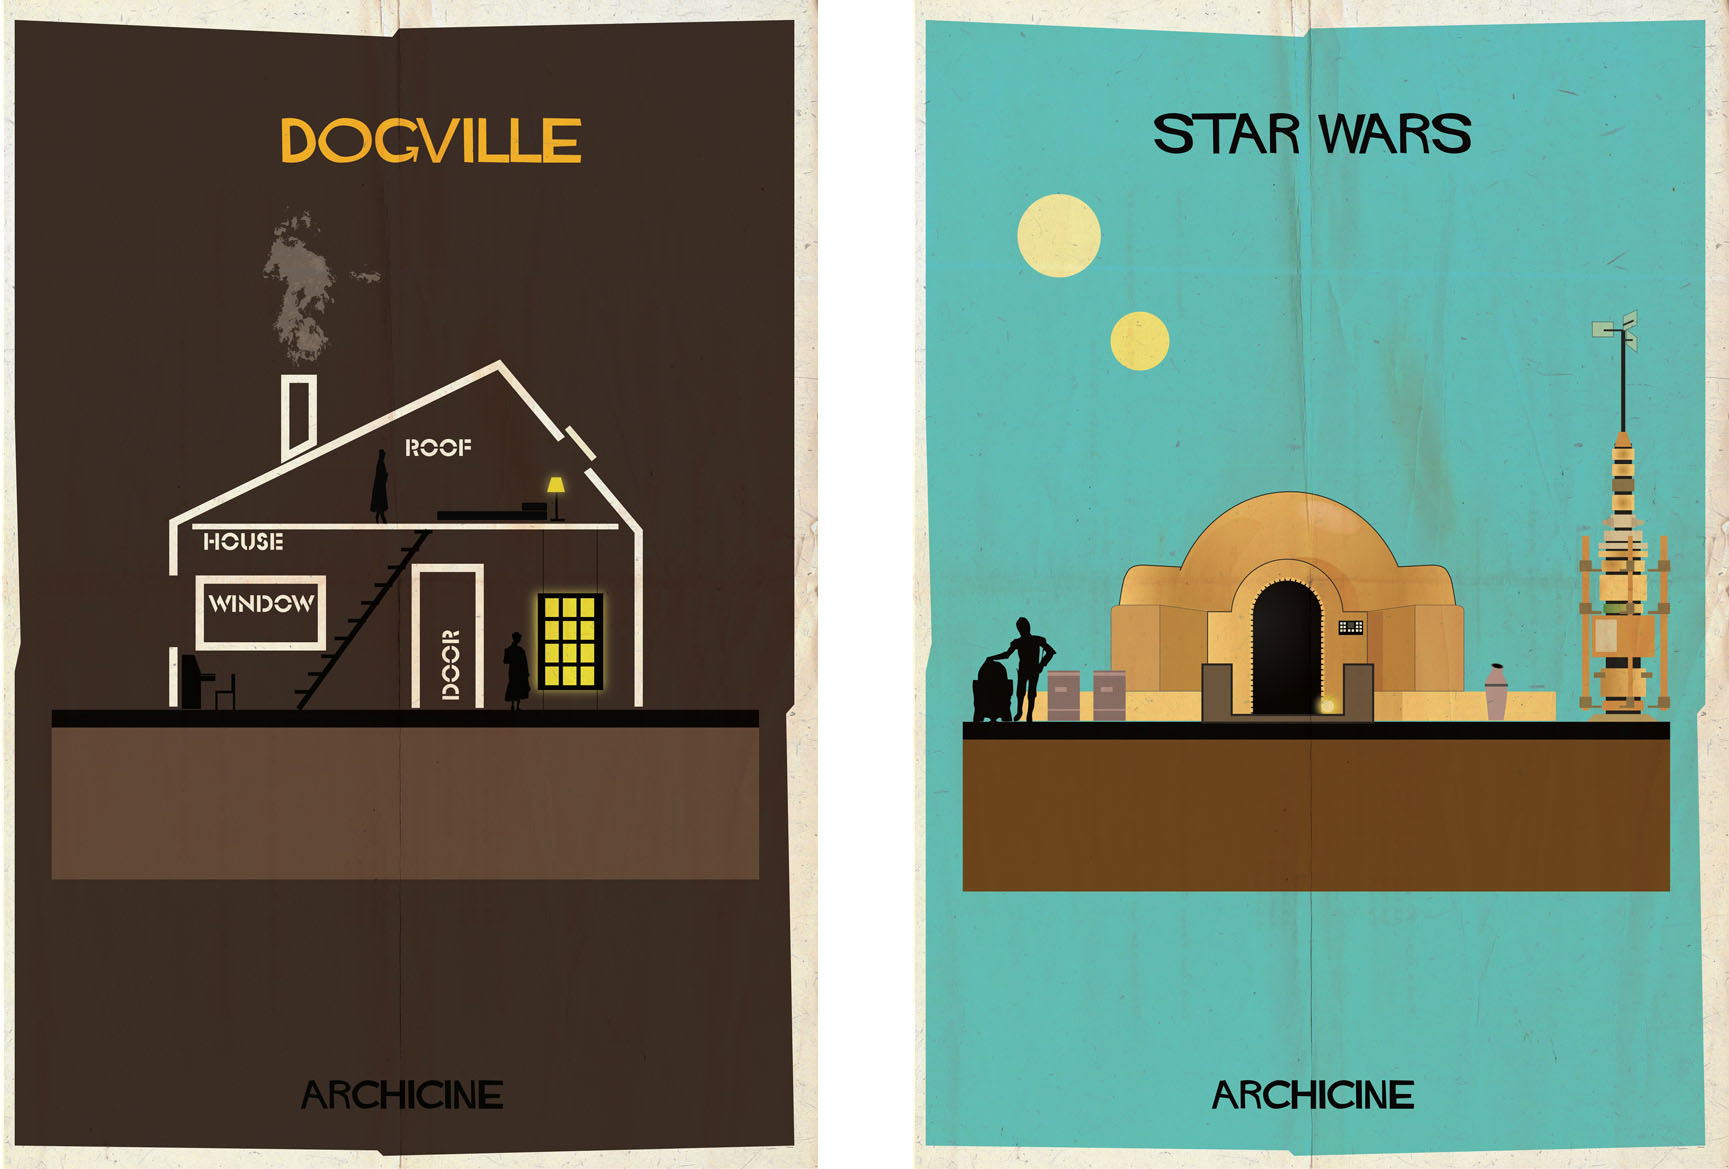 Dogville & Star wars: Archiciné by Federico Babina